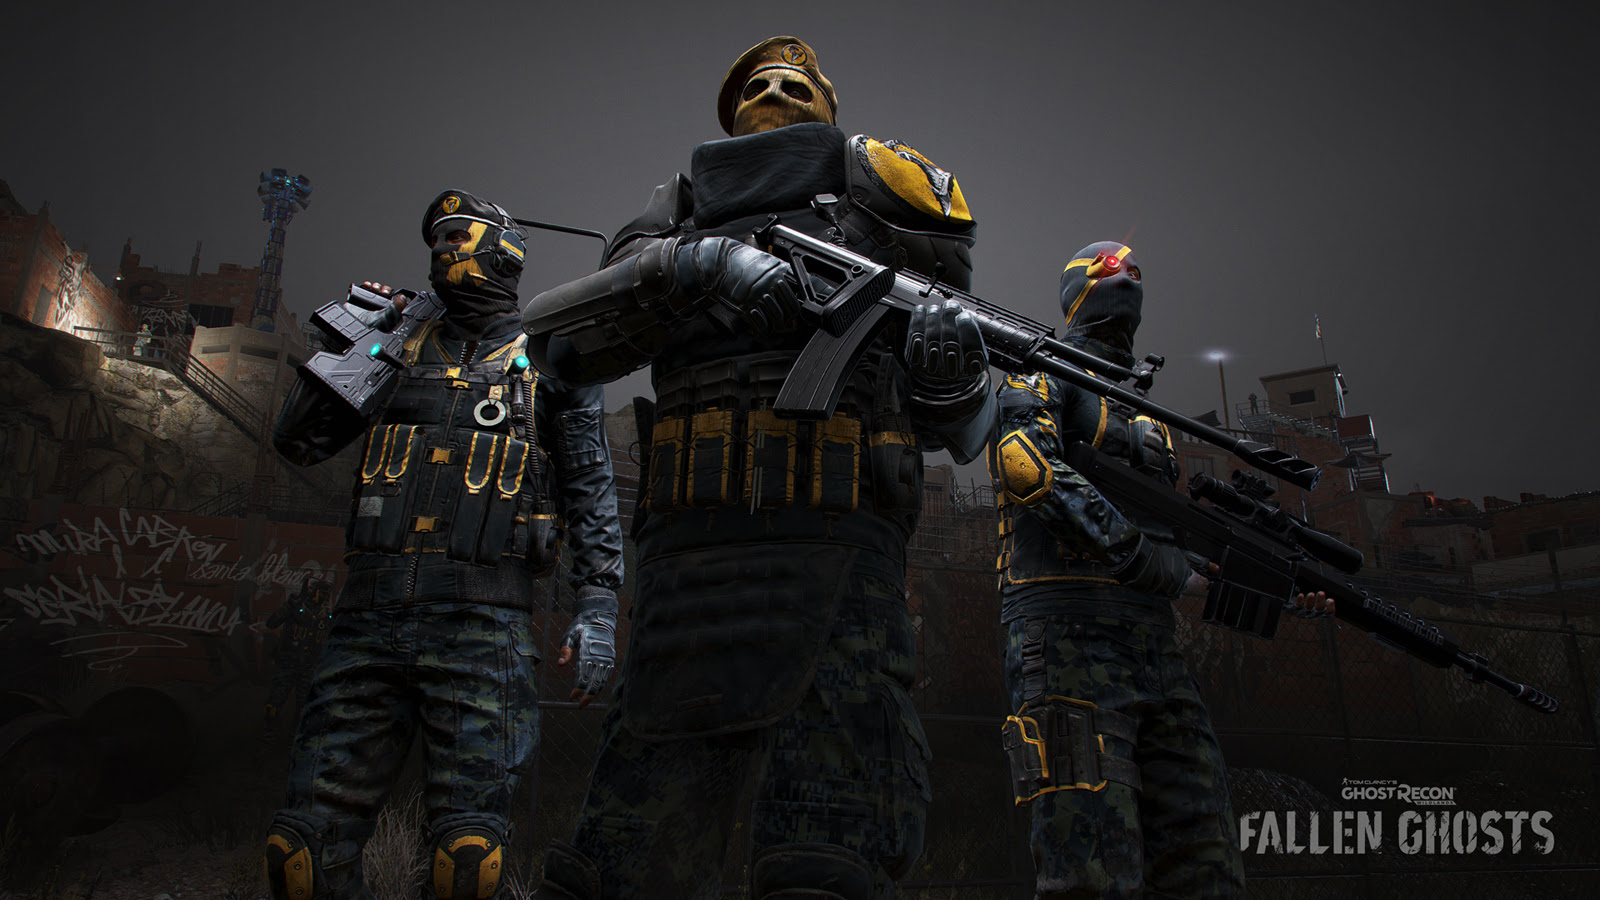 Ghost Recon Wildlands picks right back up with the Fallen Ghosts expansion screenshot